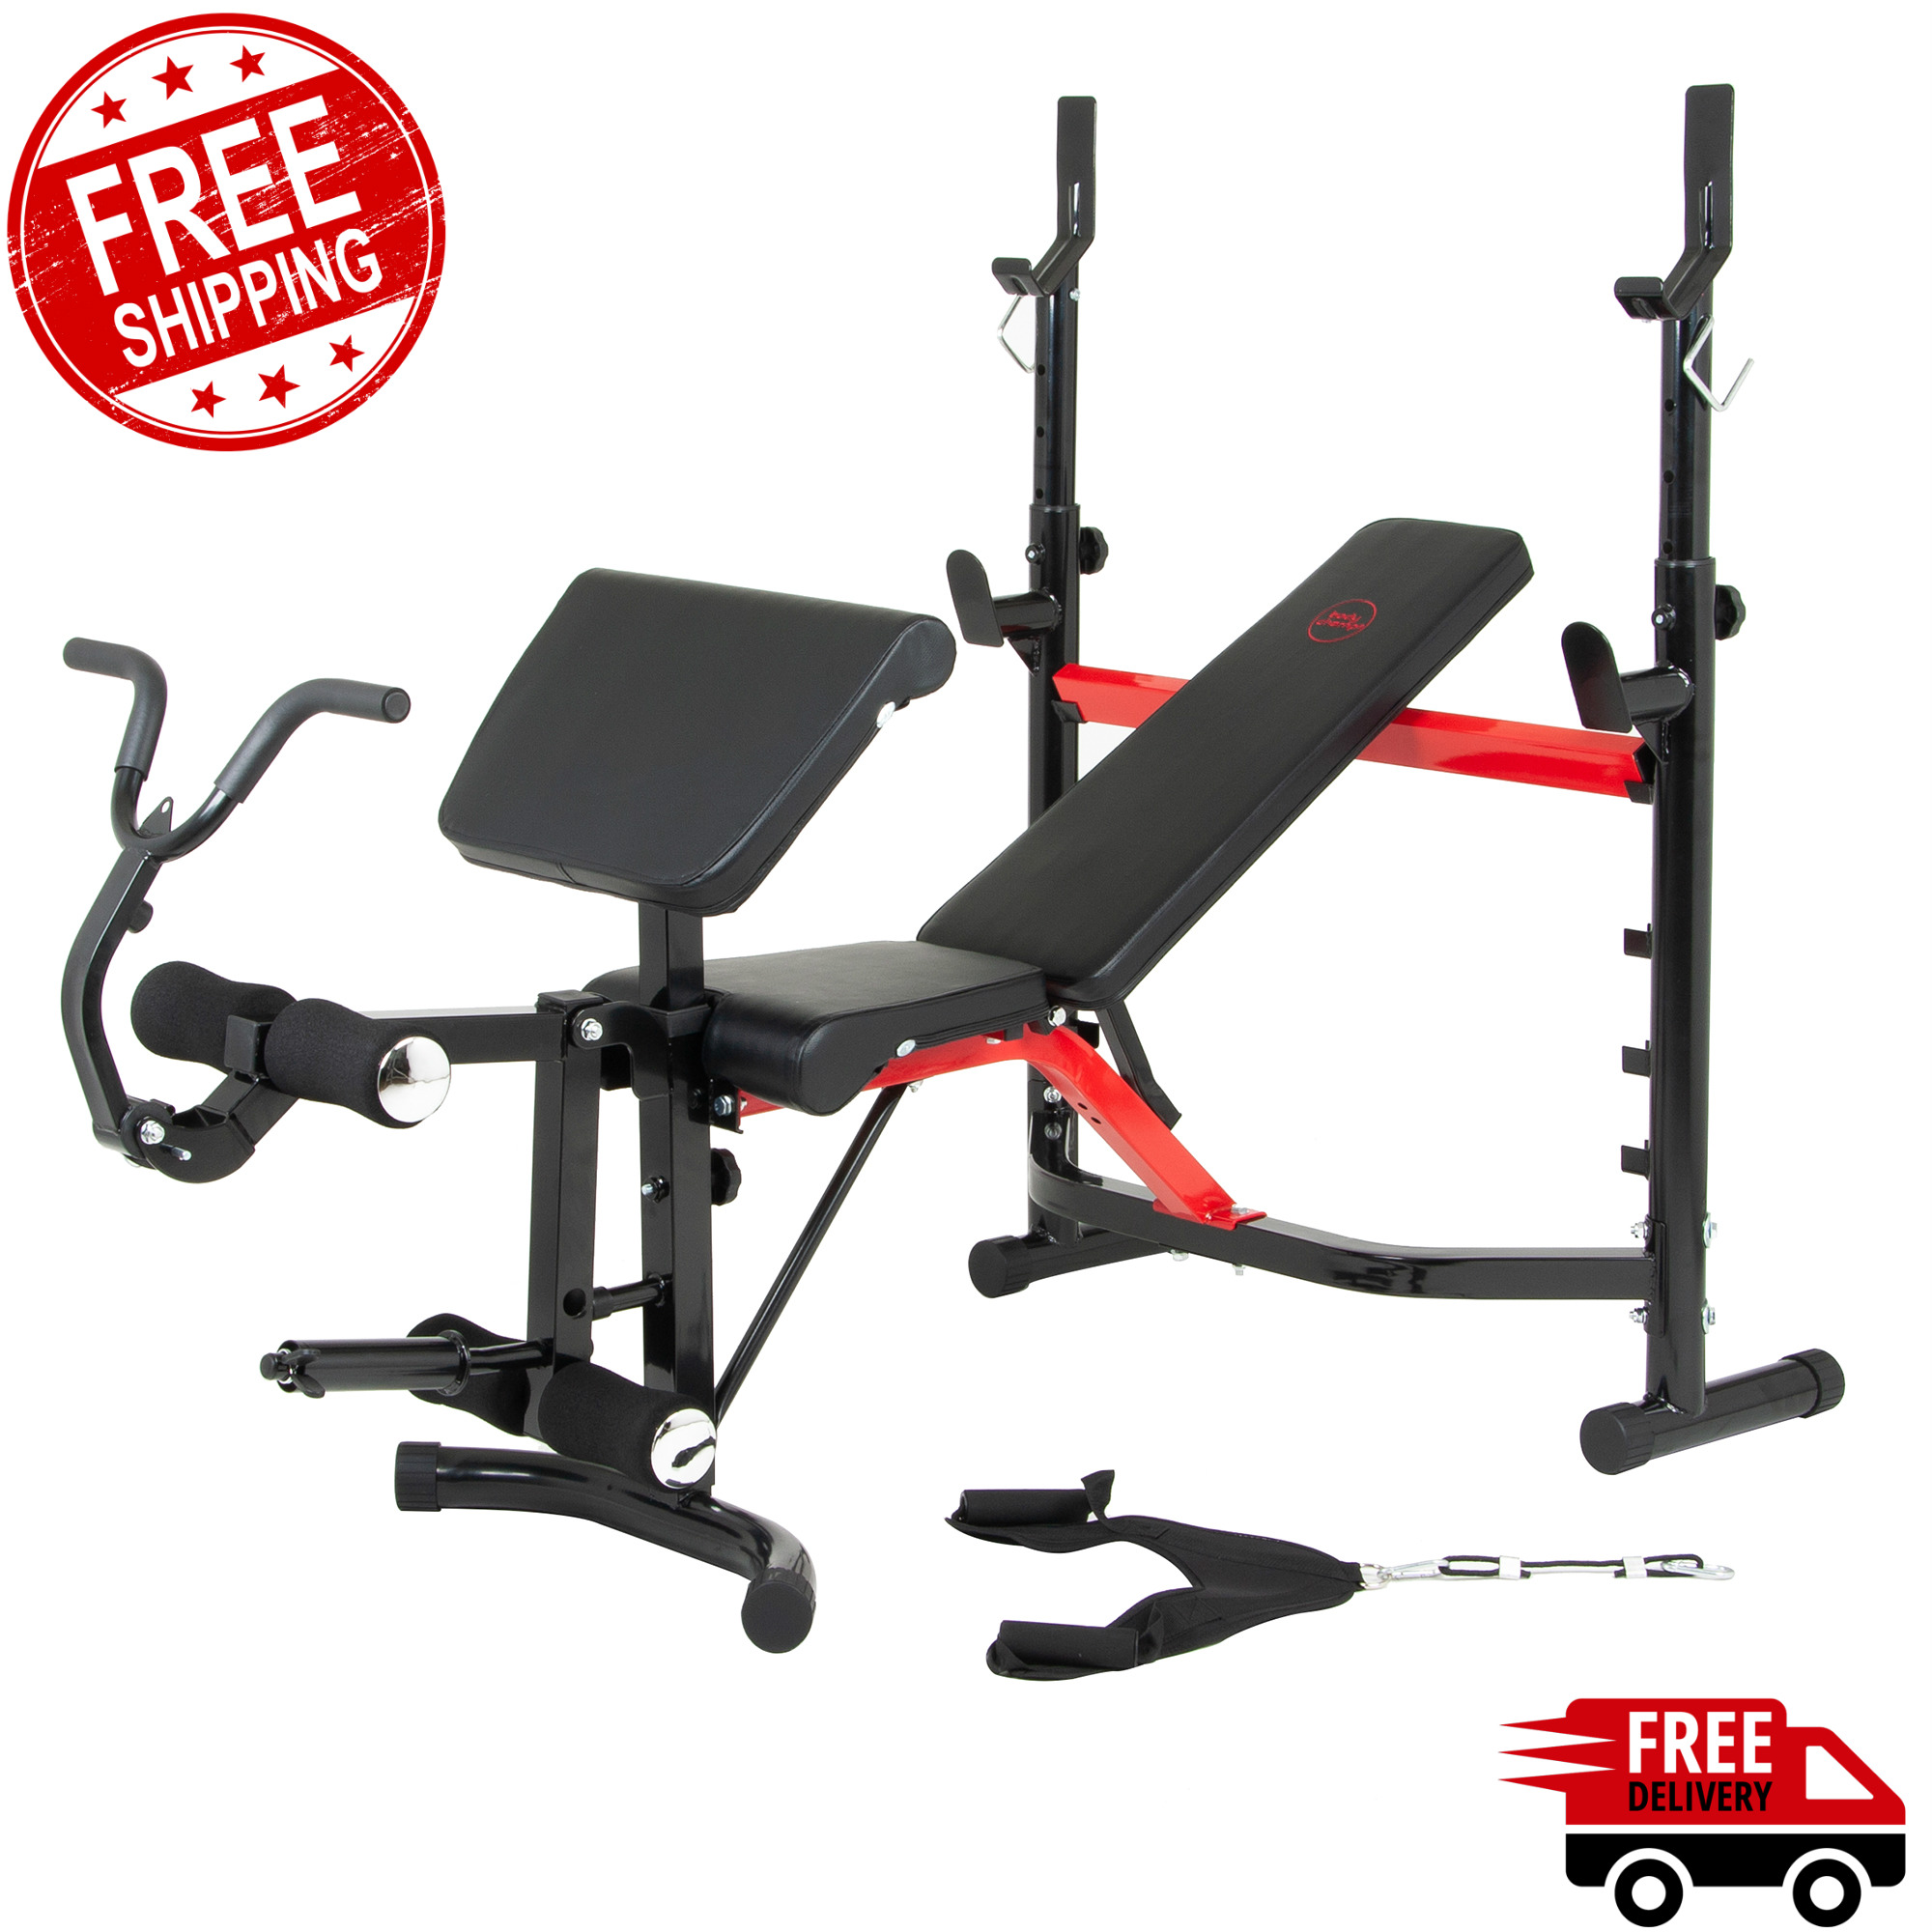 Home Gym System Adjustable Weight Lifting Bench Exercise Machine Olympic Circuit Ebay